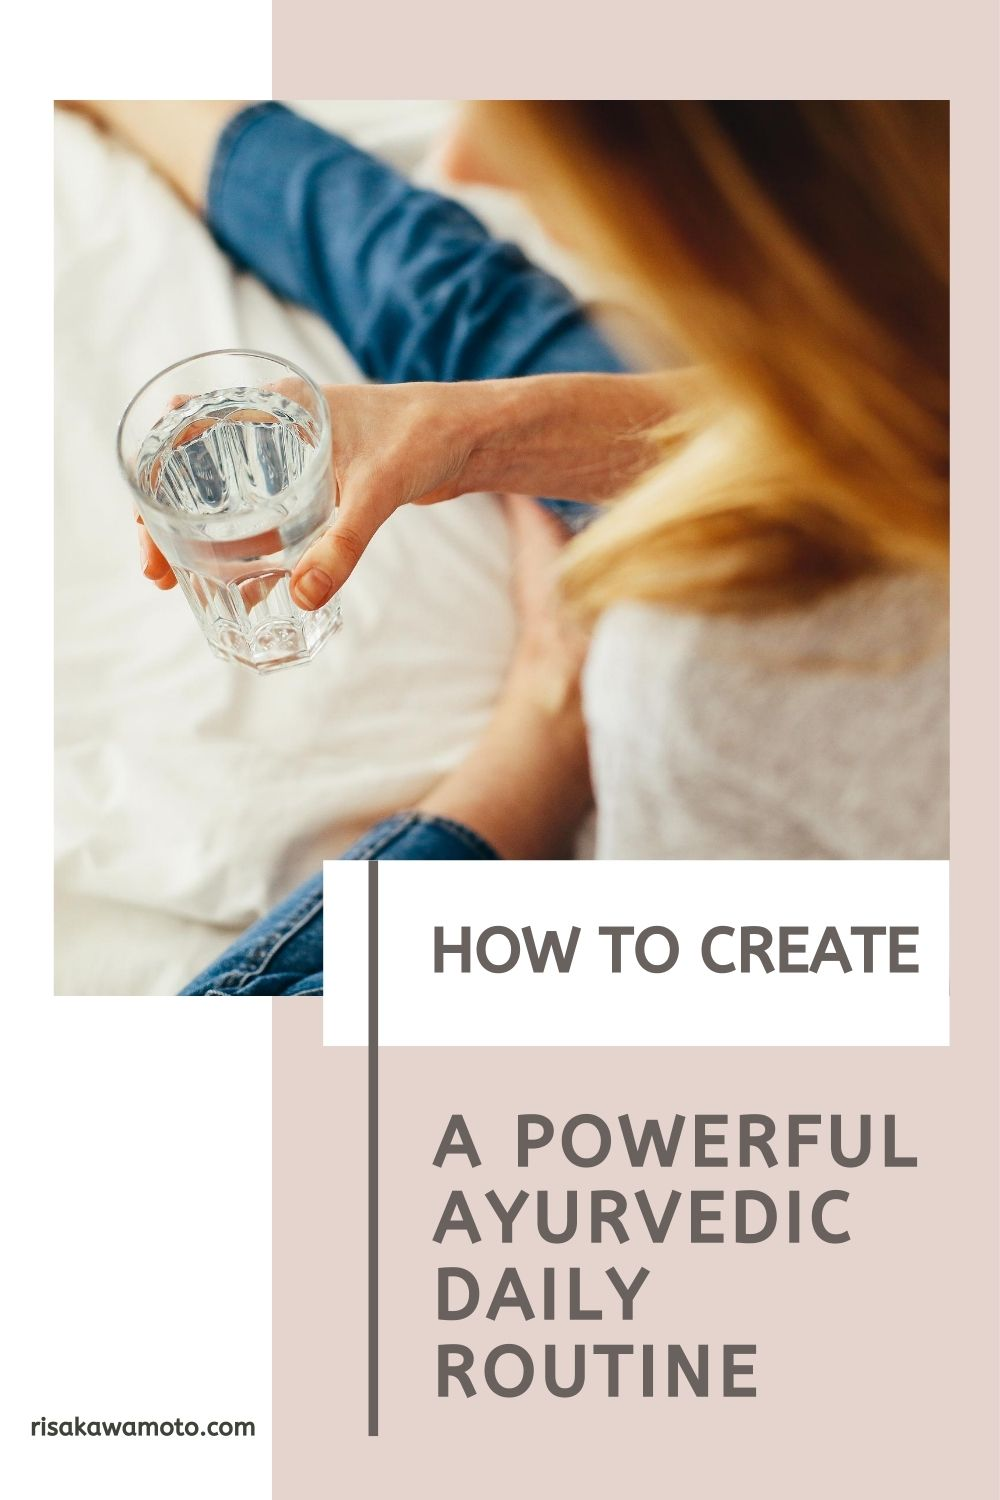 How to Create a Powerful Ayurvedic Daily Routine